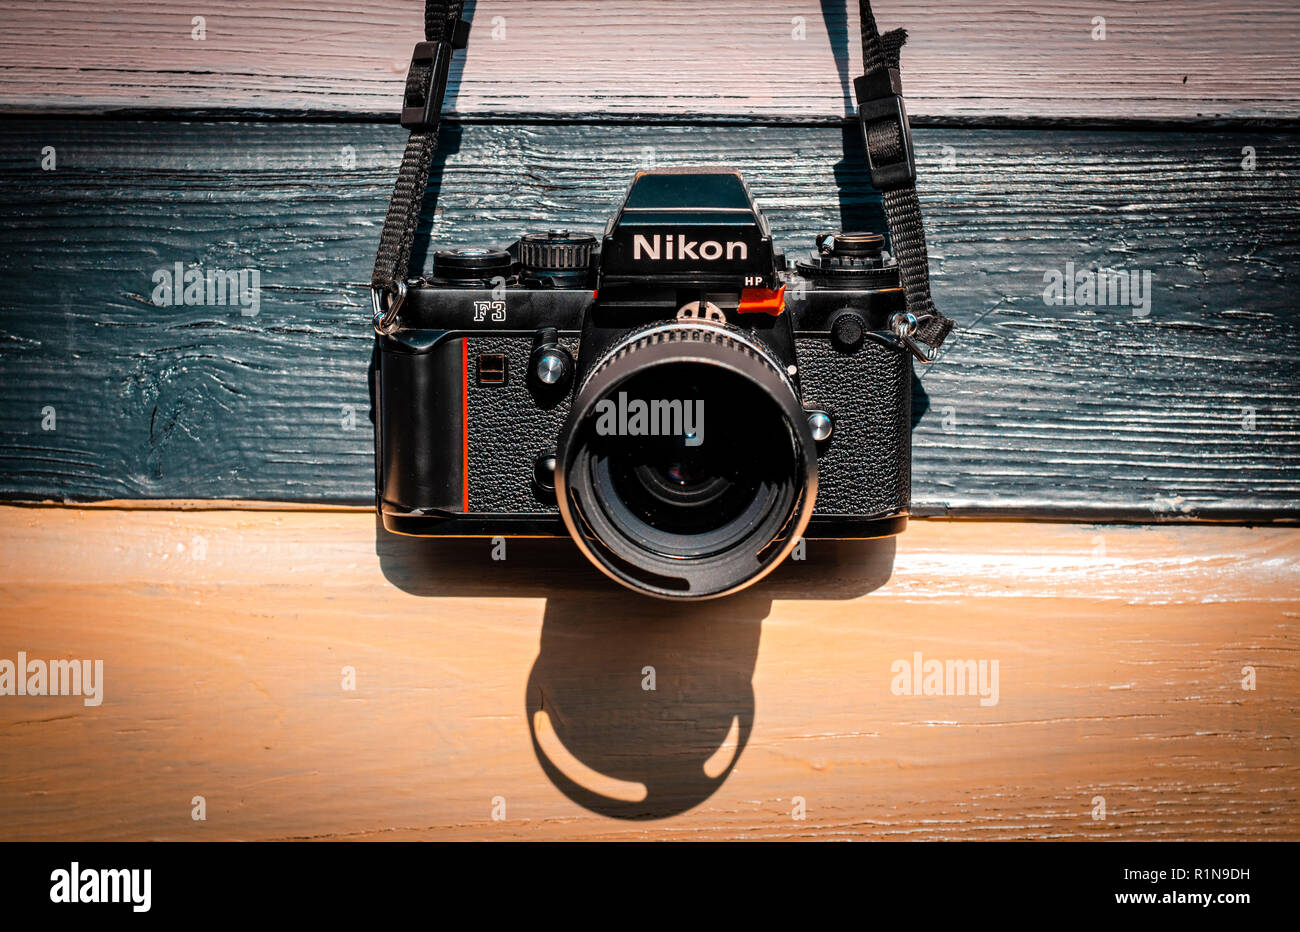 Nikon F3 single lens reflex 35mm professional film camera First launched in 1980 and remained in production until 200 - Stock Image